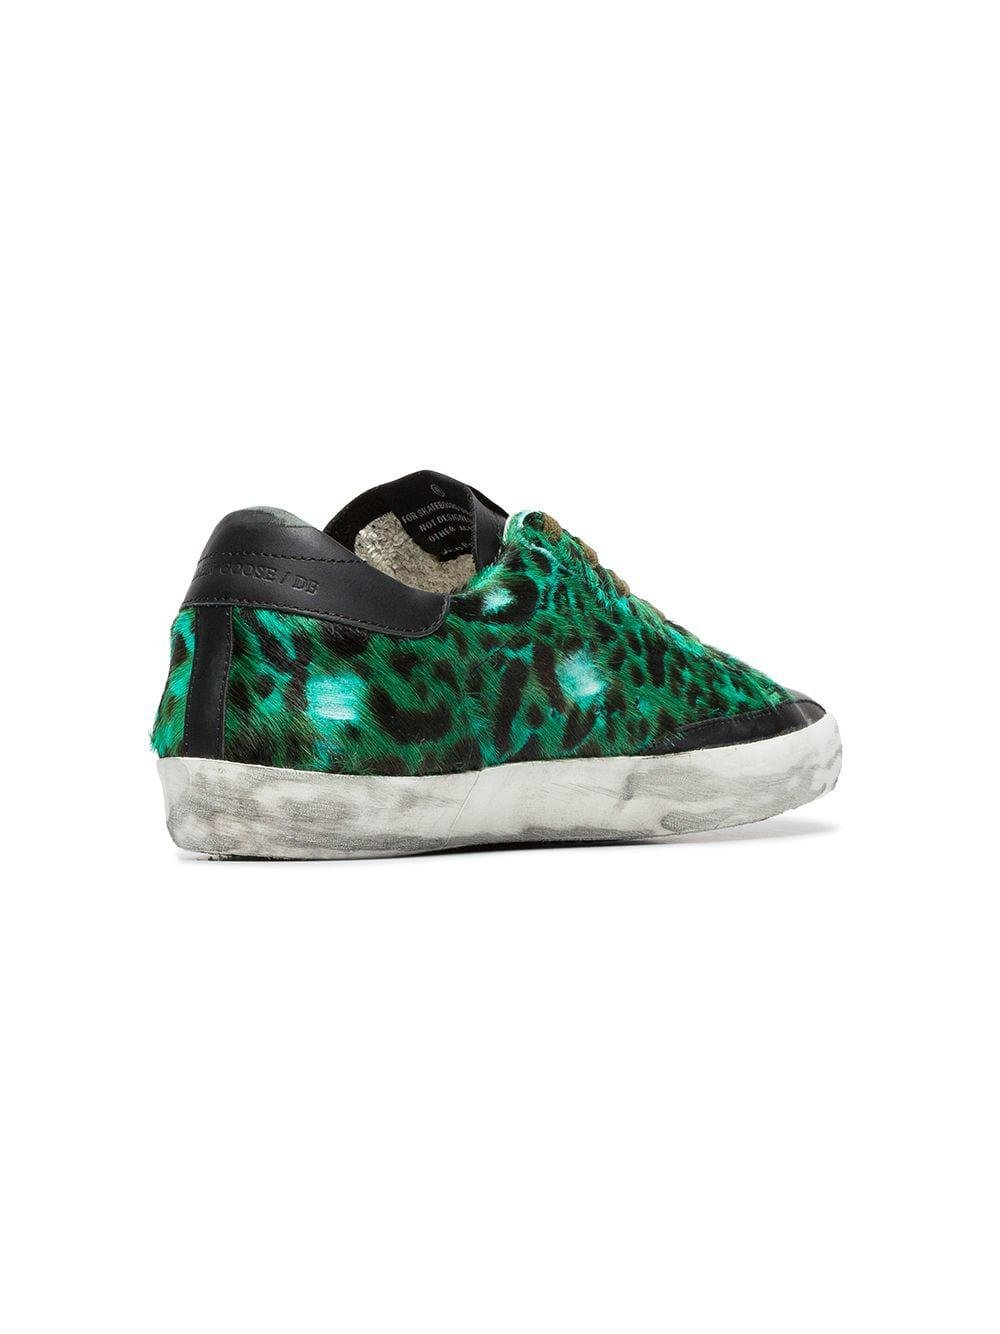 Golden Goose Deluxe Brand Green, Black And Silver Superstar Leopard Print Leather Sneakers